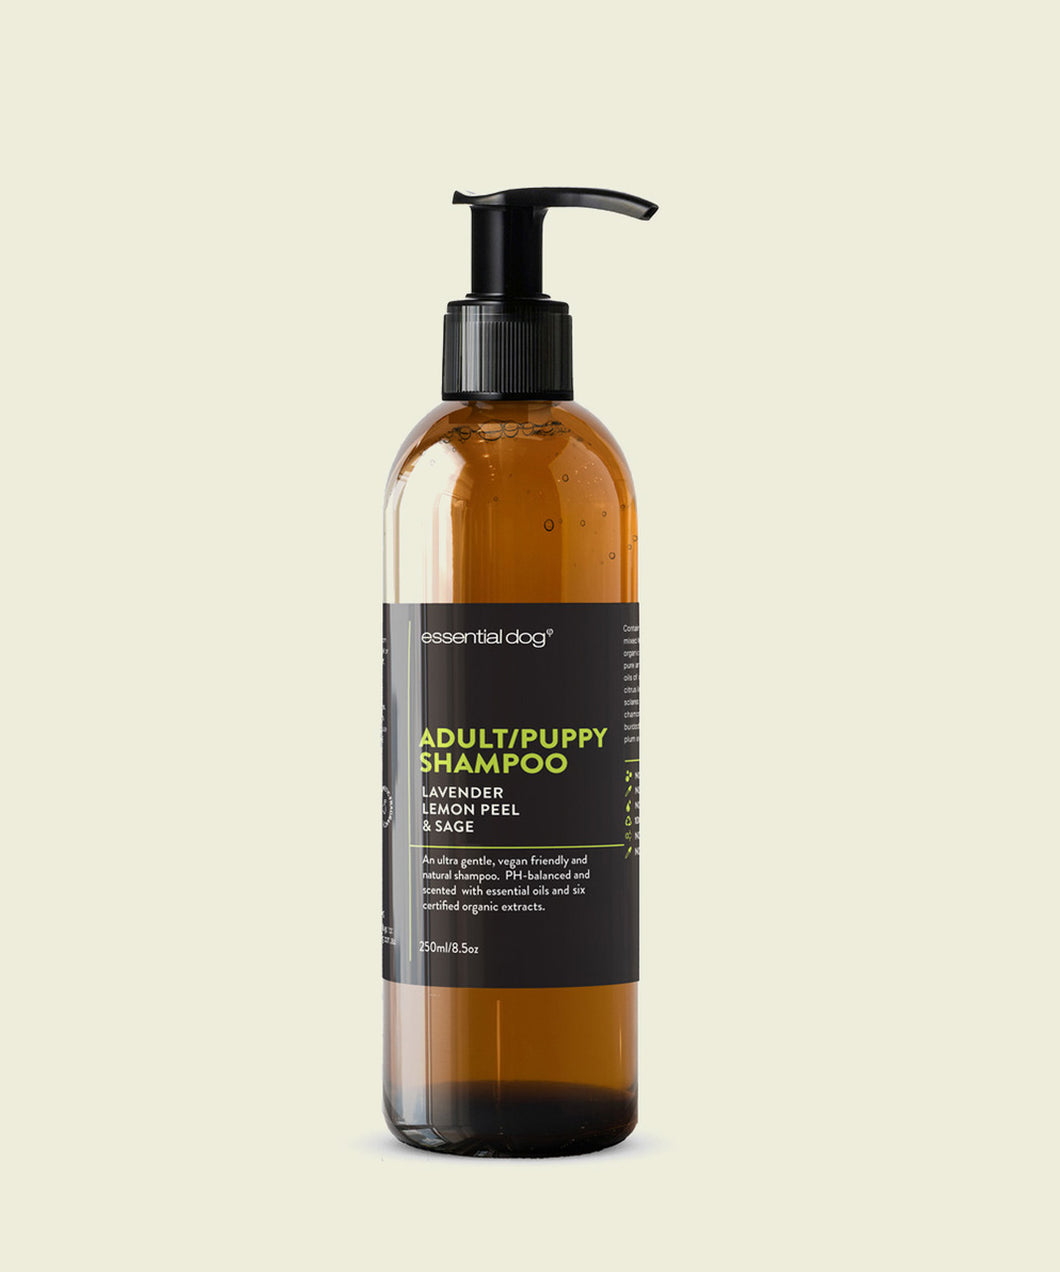 Essential Dog Gentle Adult & Puppy Shampoo - Lavender, Lemon Peel, & Clary Sage